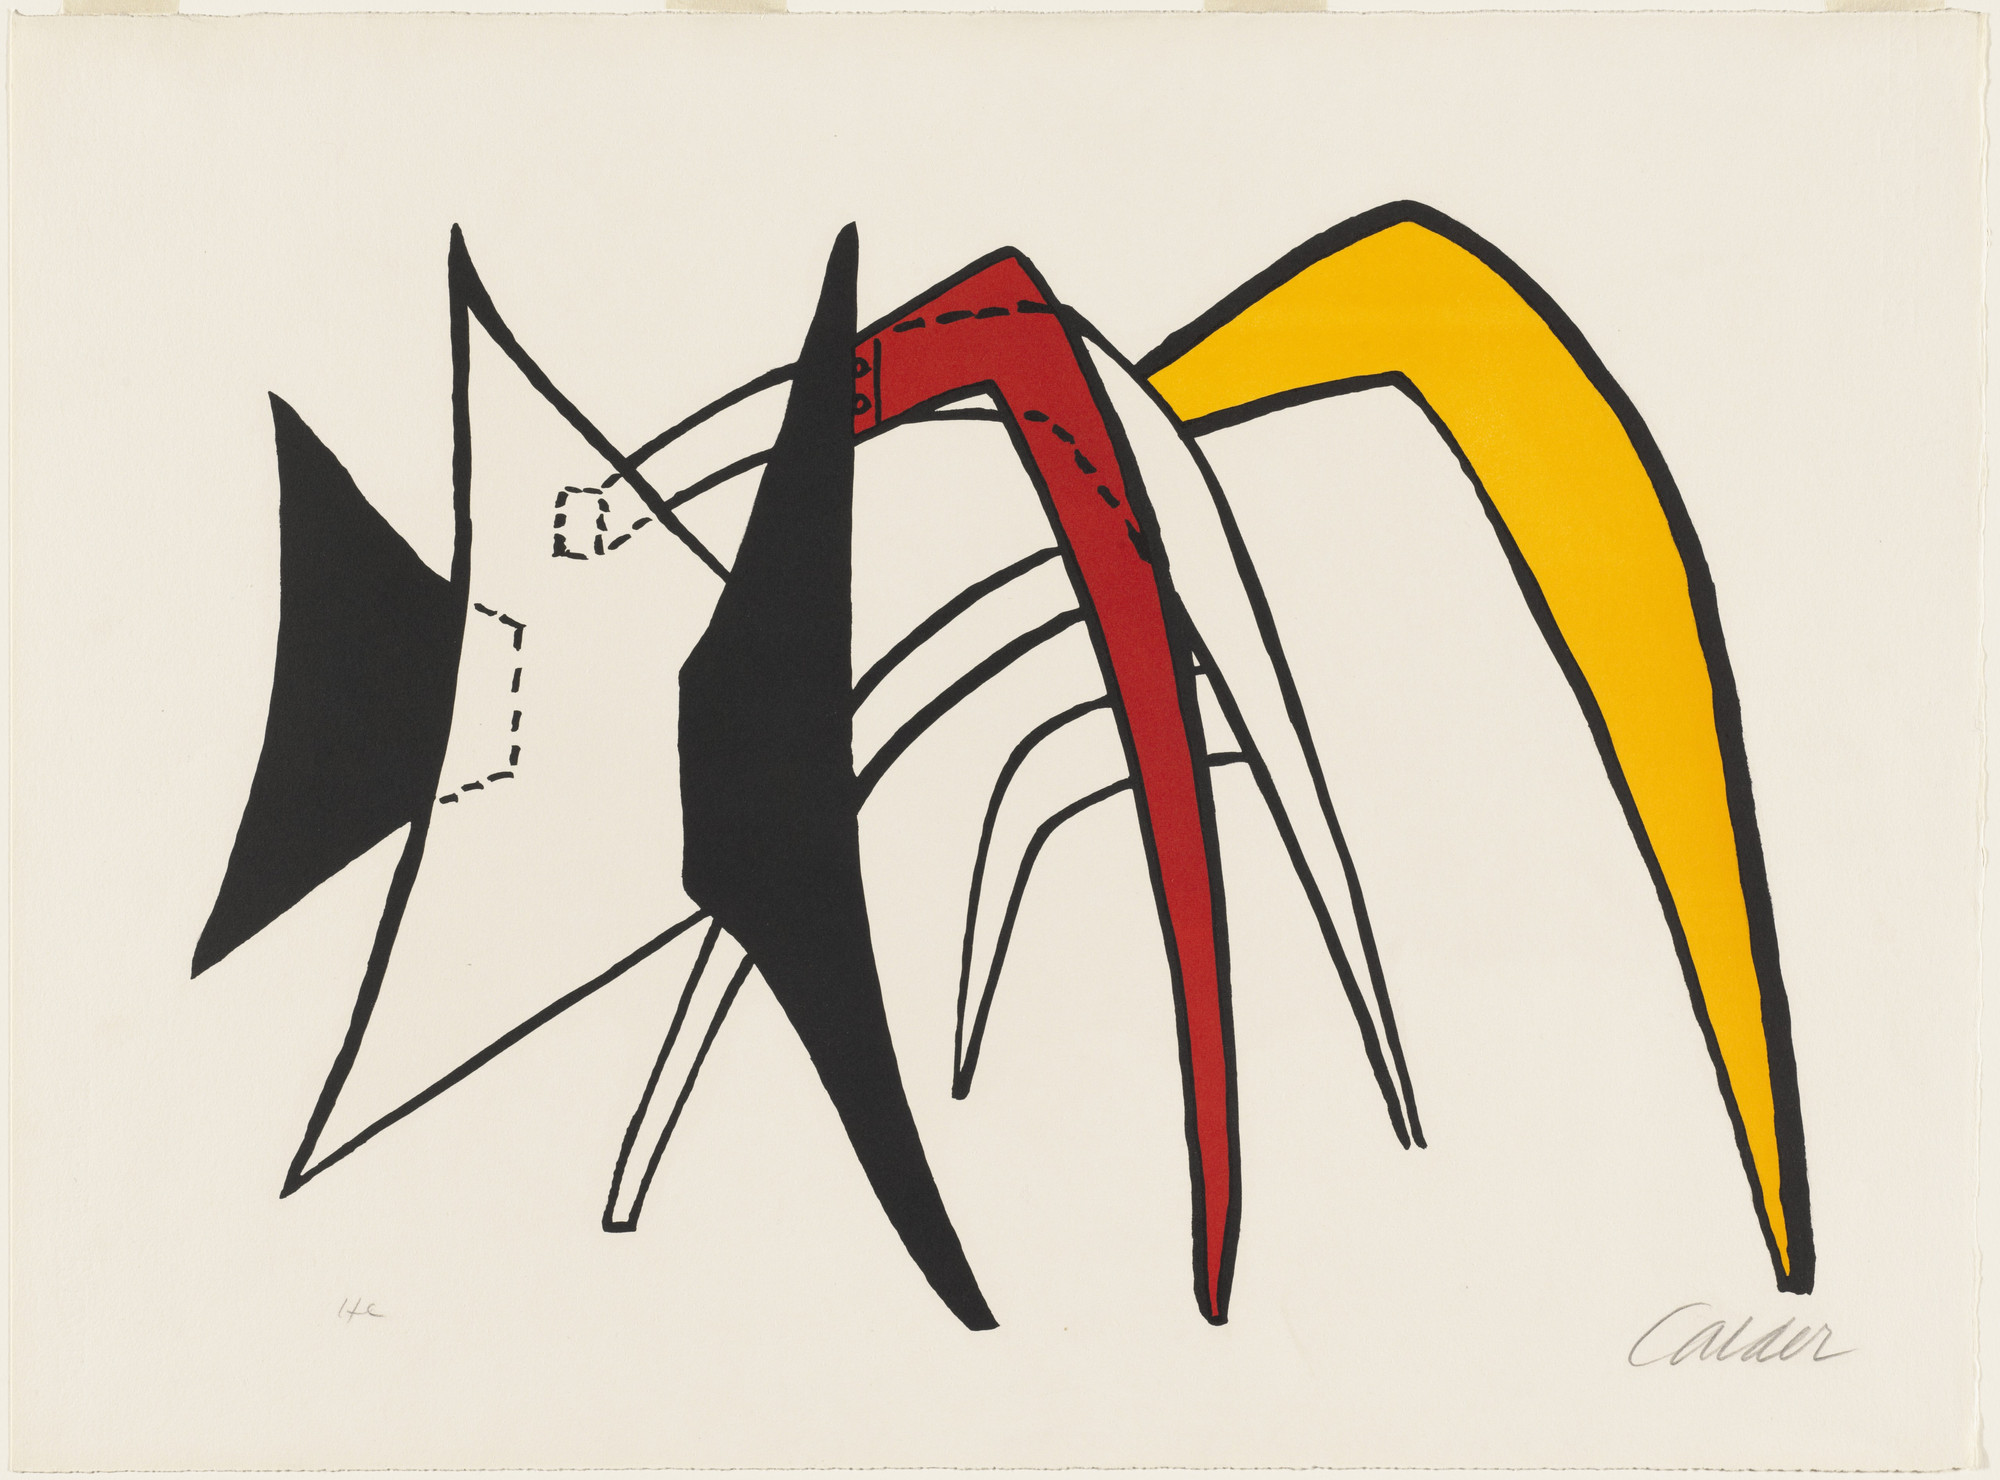 Alexander Calder. The Giant Yellow Ant-Eater (Tamonoir jaune). 1963